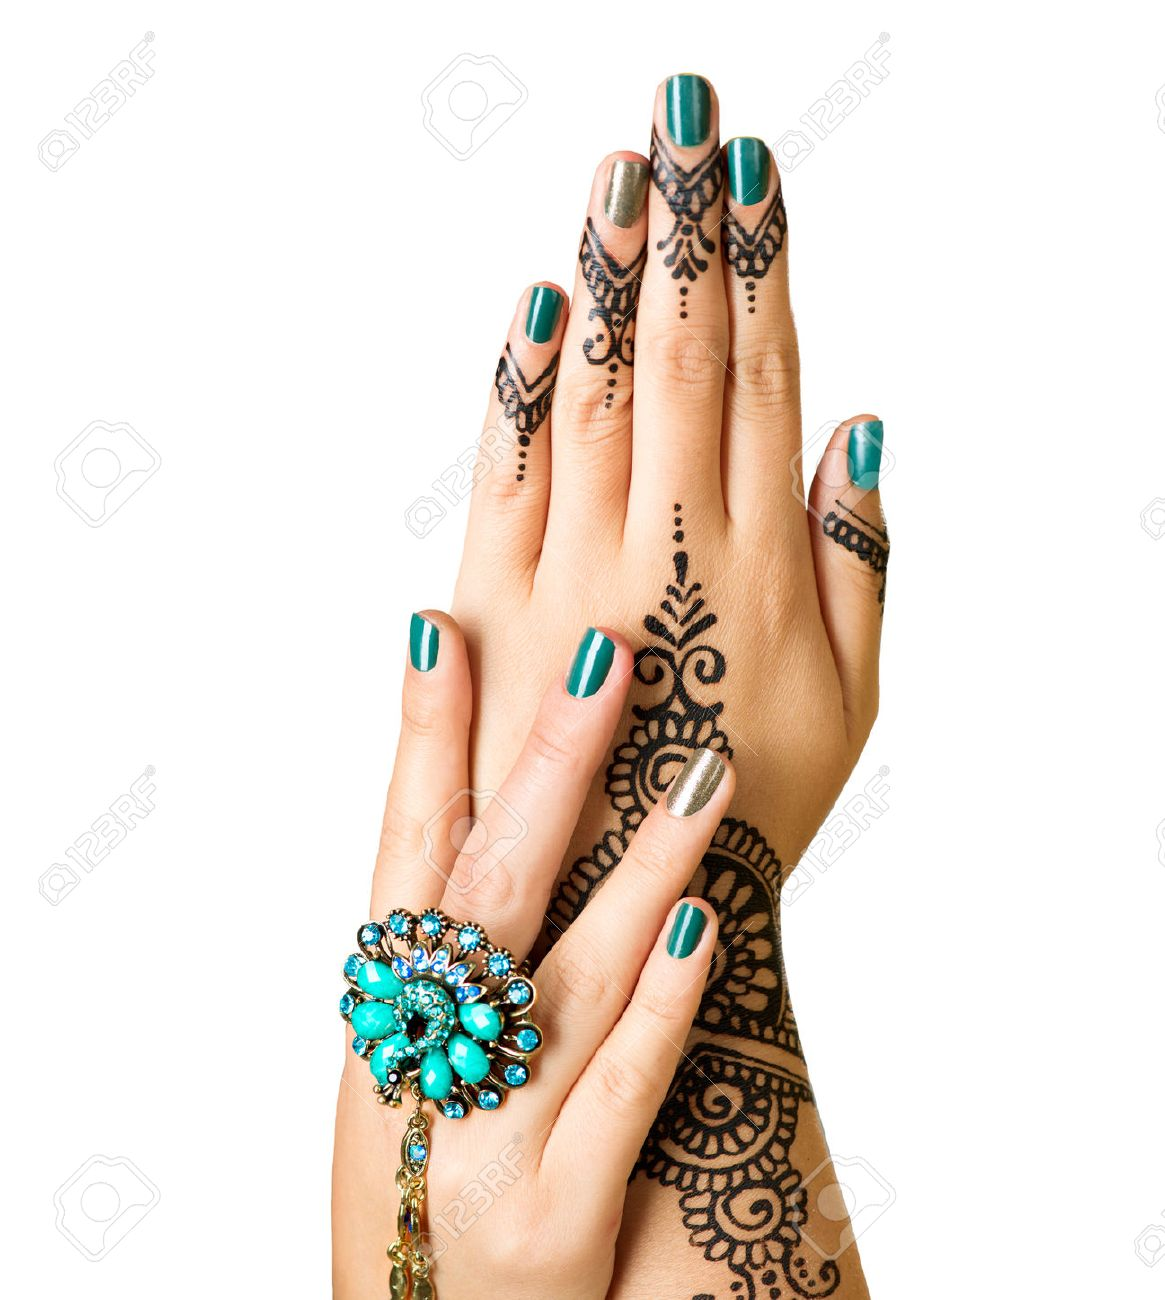 Mehndi Tattoo Isolated On White Woman Hands With Black Henna